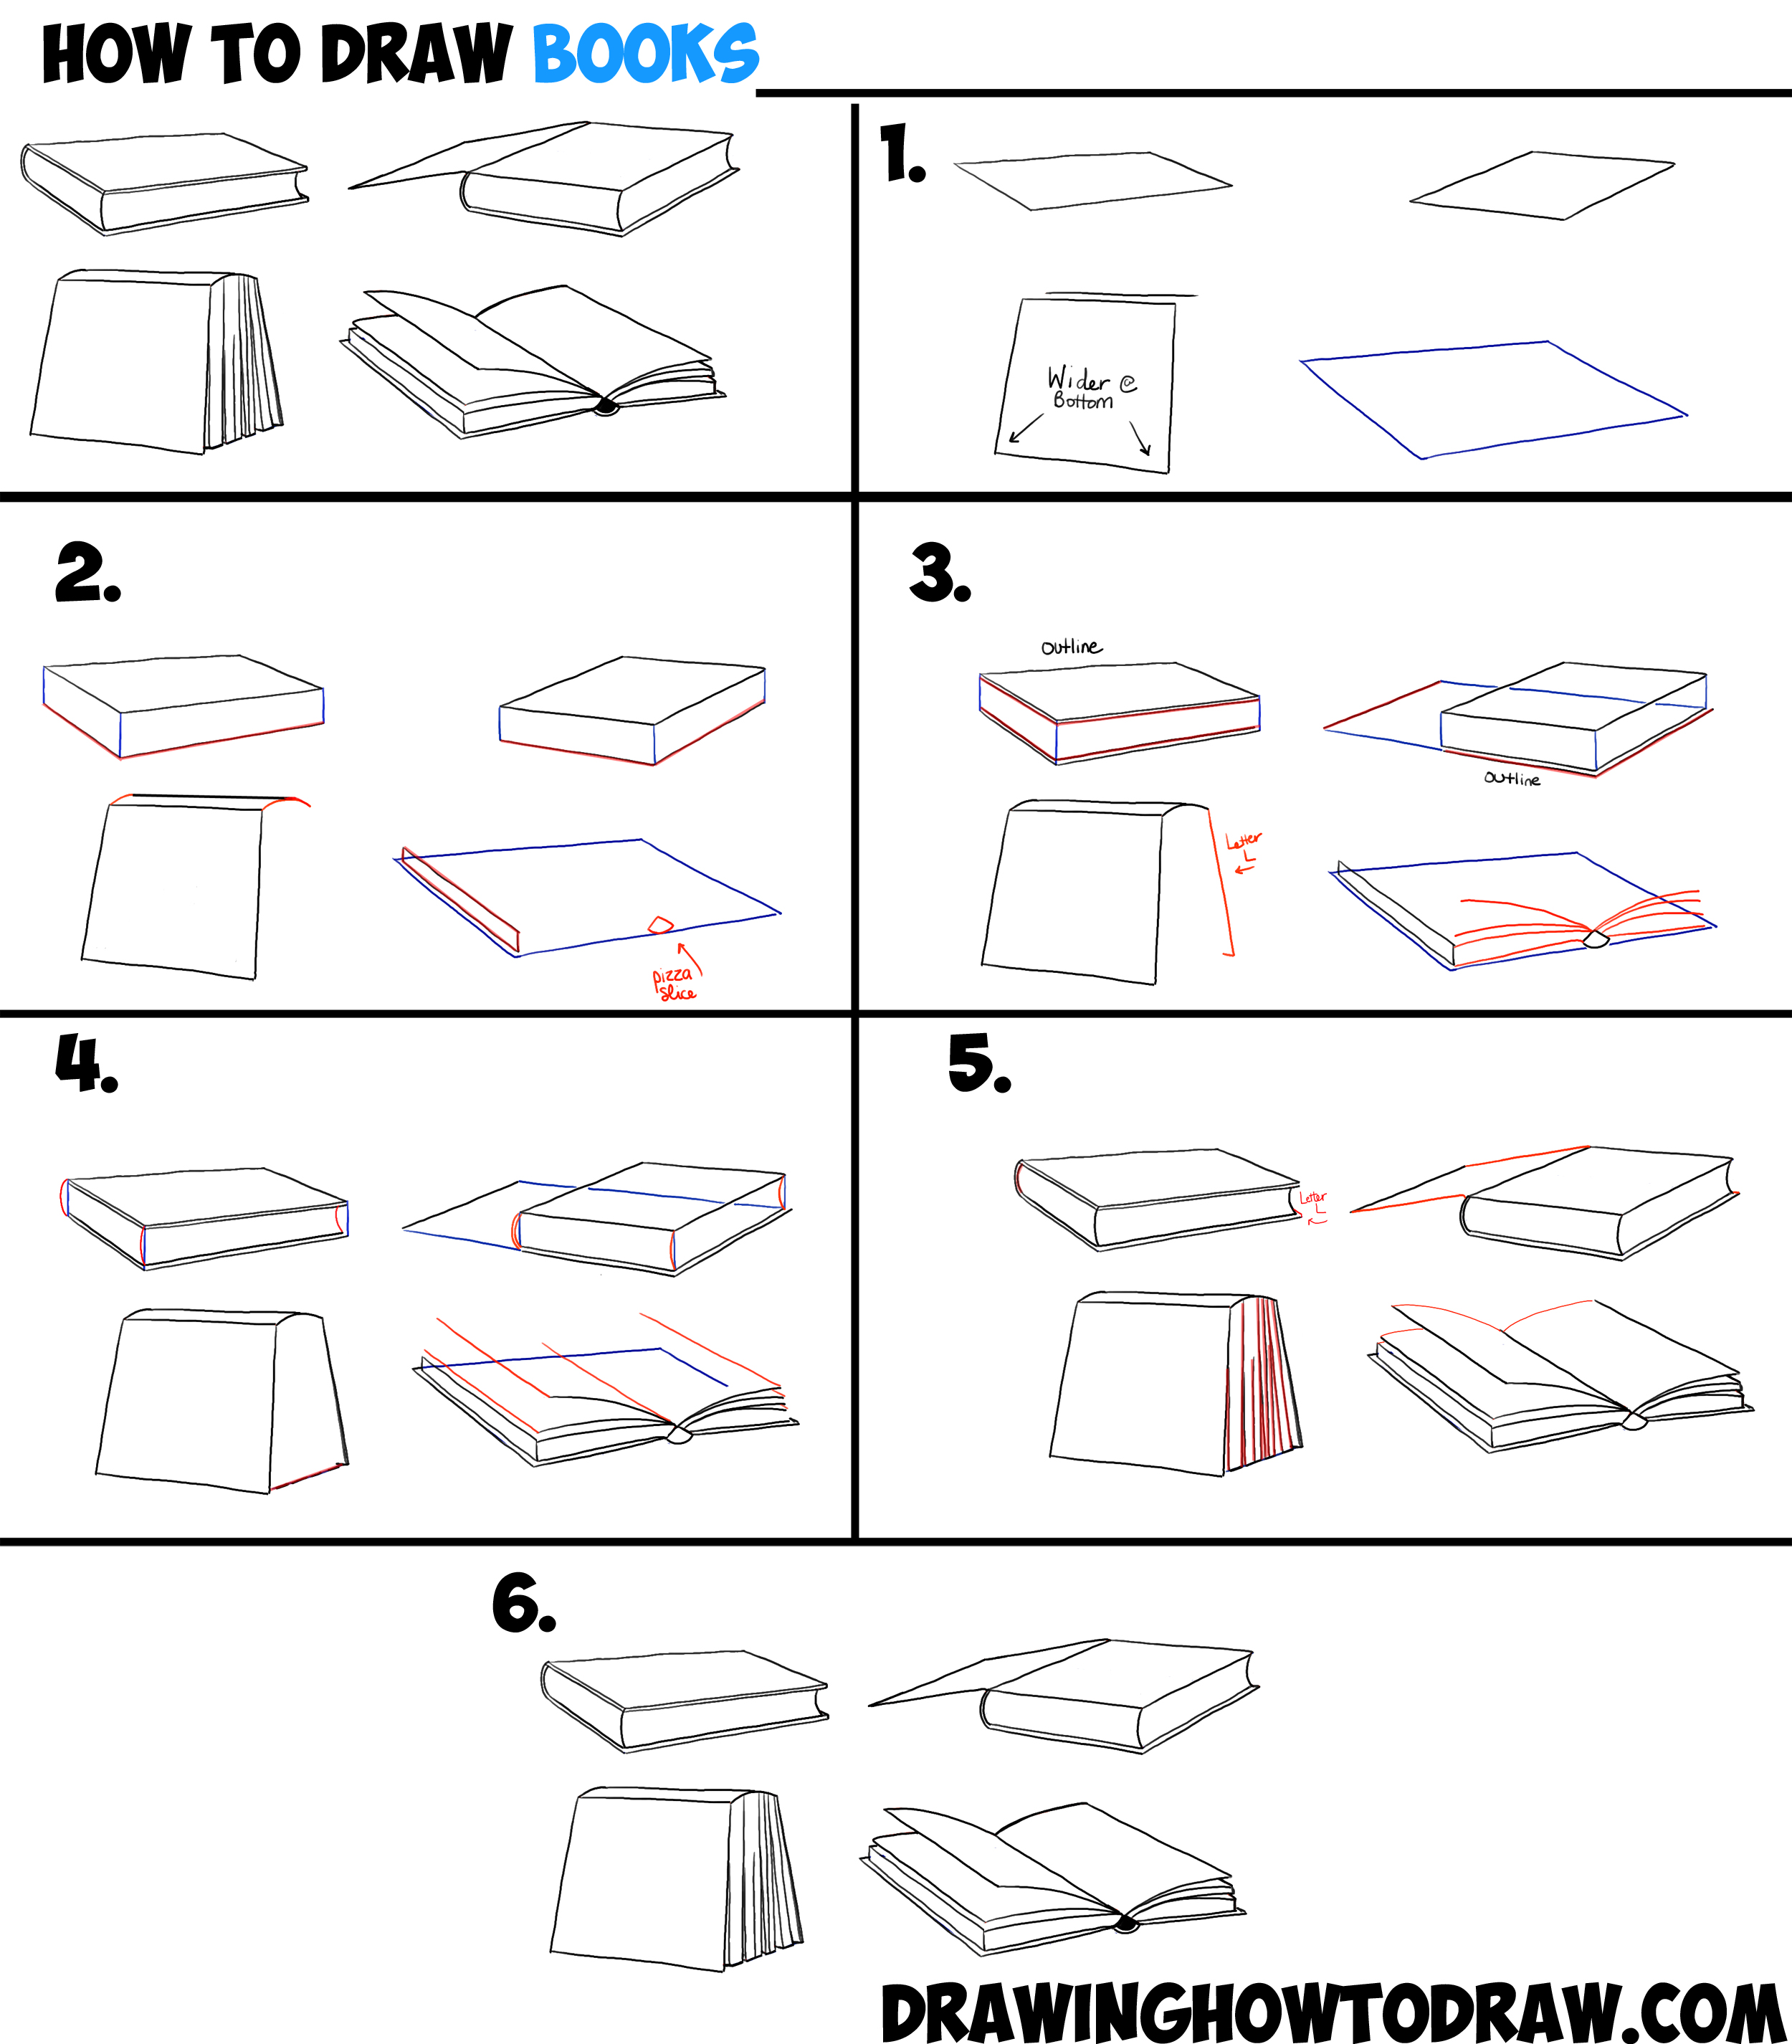 How to Draw Books in 4 Different Angles / Perspectives (Open / Closed etc)